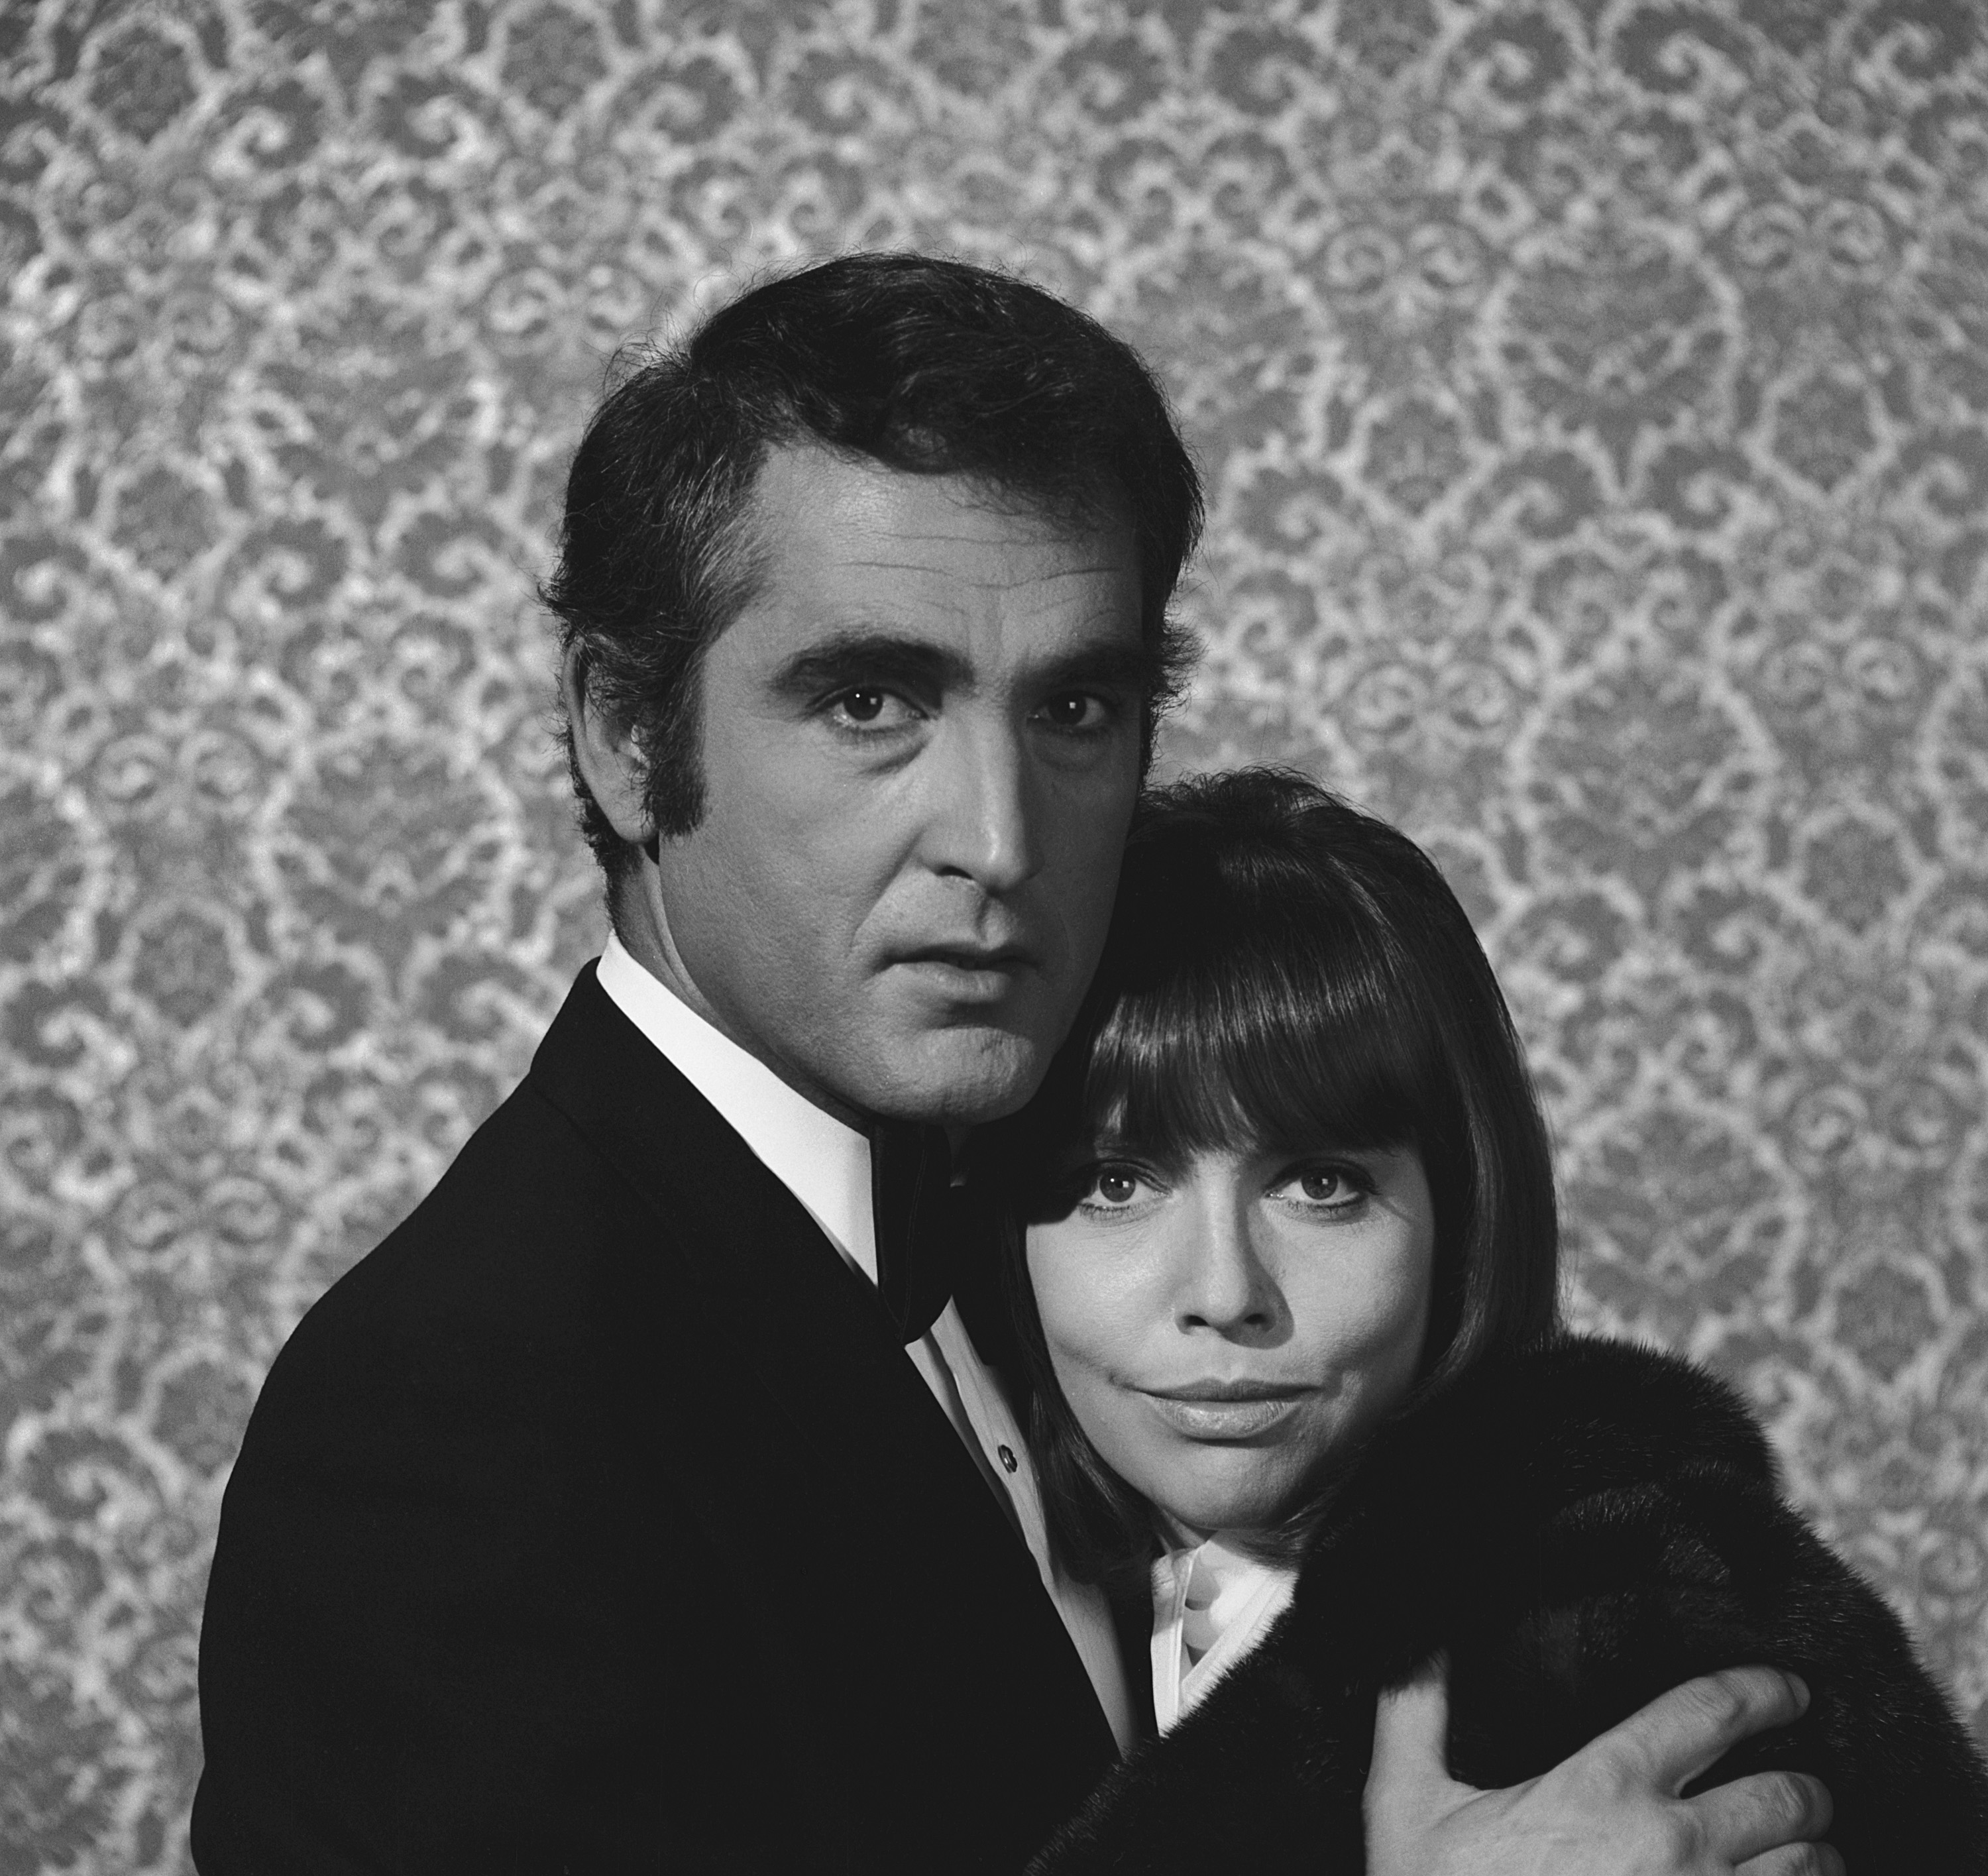 Barbara Feldon in the arms of her first husband Lucien Verdoux Feldon